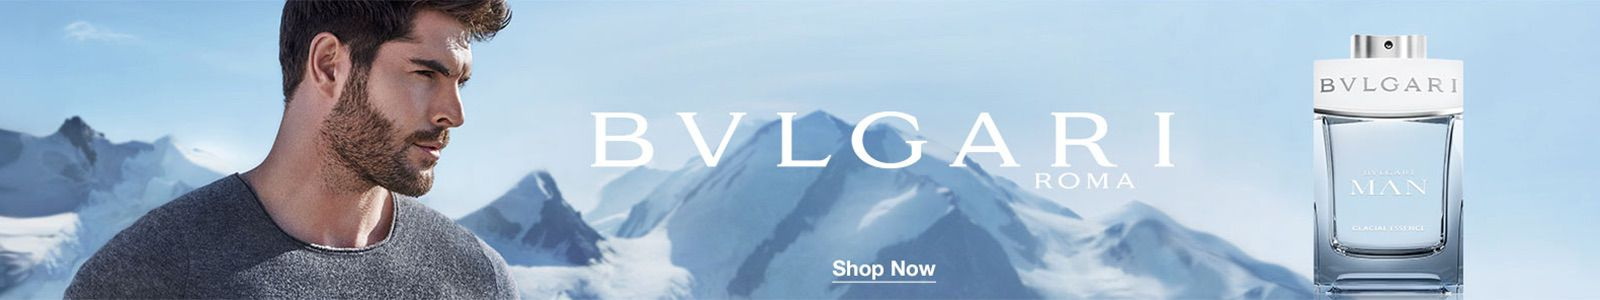 Bvlgari, Roma, Shop Now